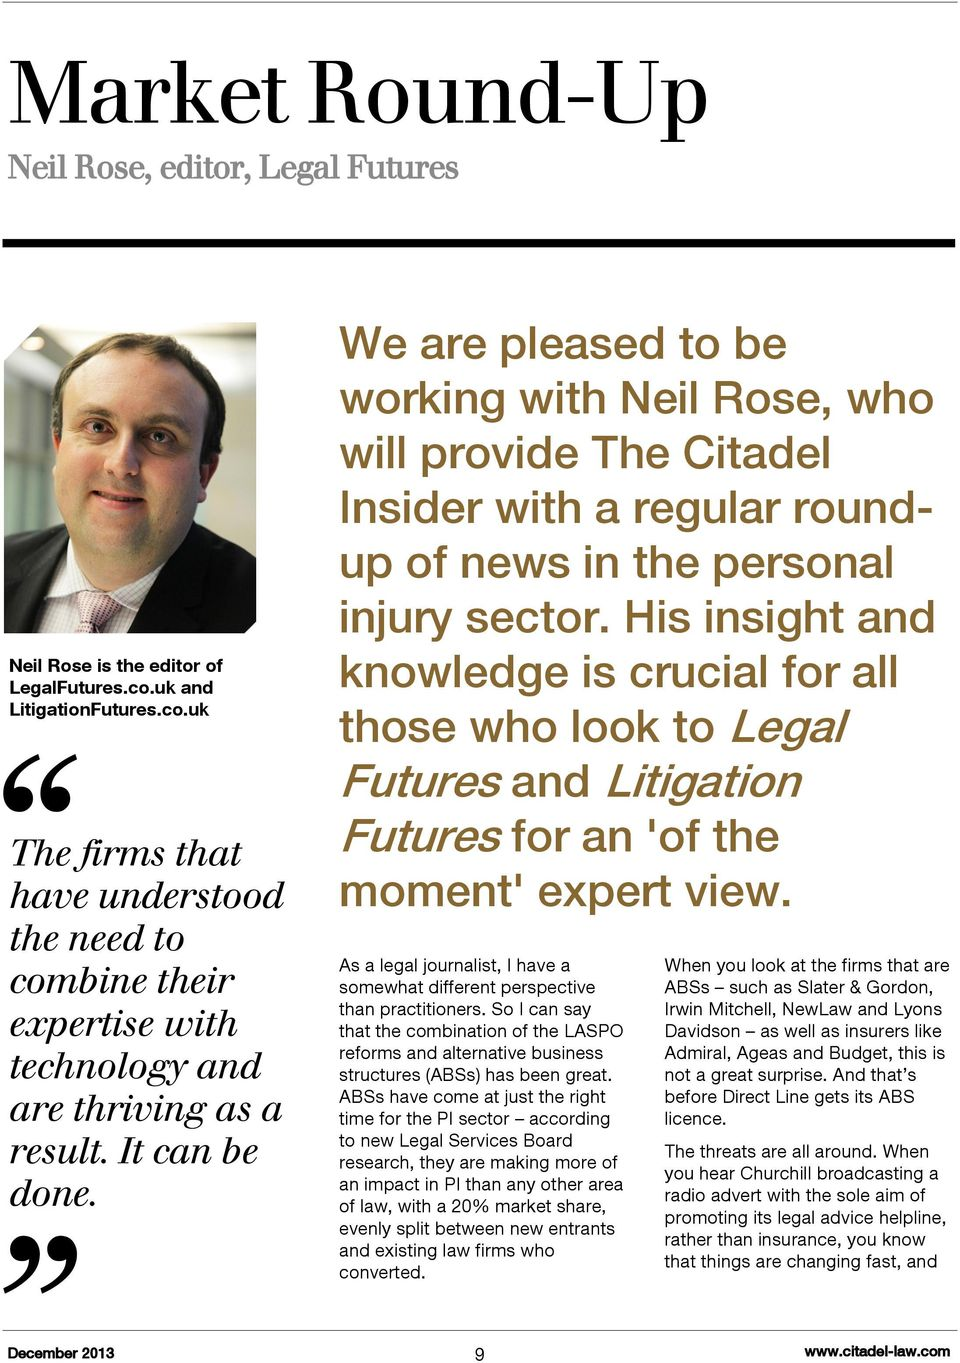 We are pleased to be working with Neil Rose, who will provide The Citadel Insider with a regular roundup of news in the personal injury sector.